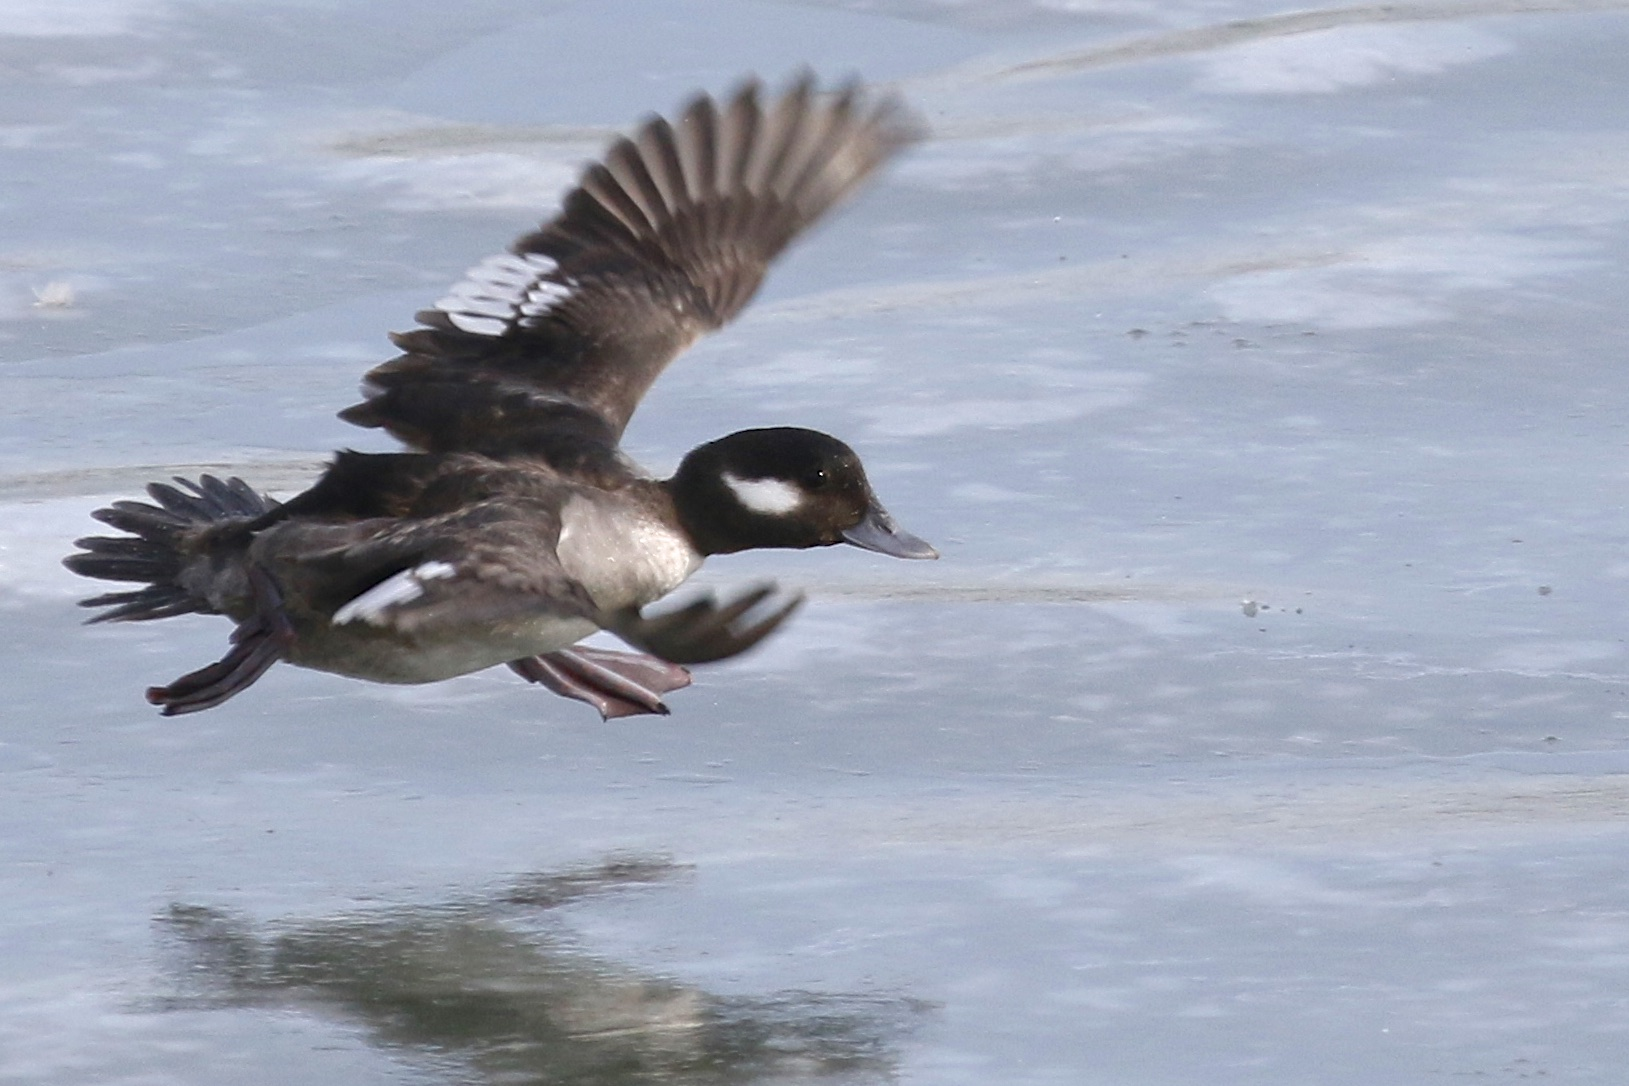 ~She is starting to get air born here as she runs across the ice to pick up speed for the take off. Female Bufflehead at Edith G. Read Wildlife Sanctuary, 2/21/15.~